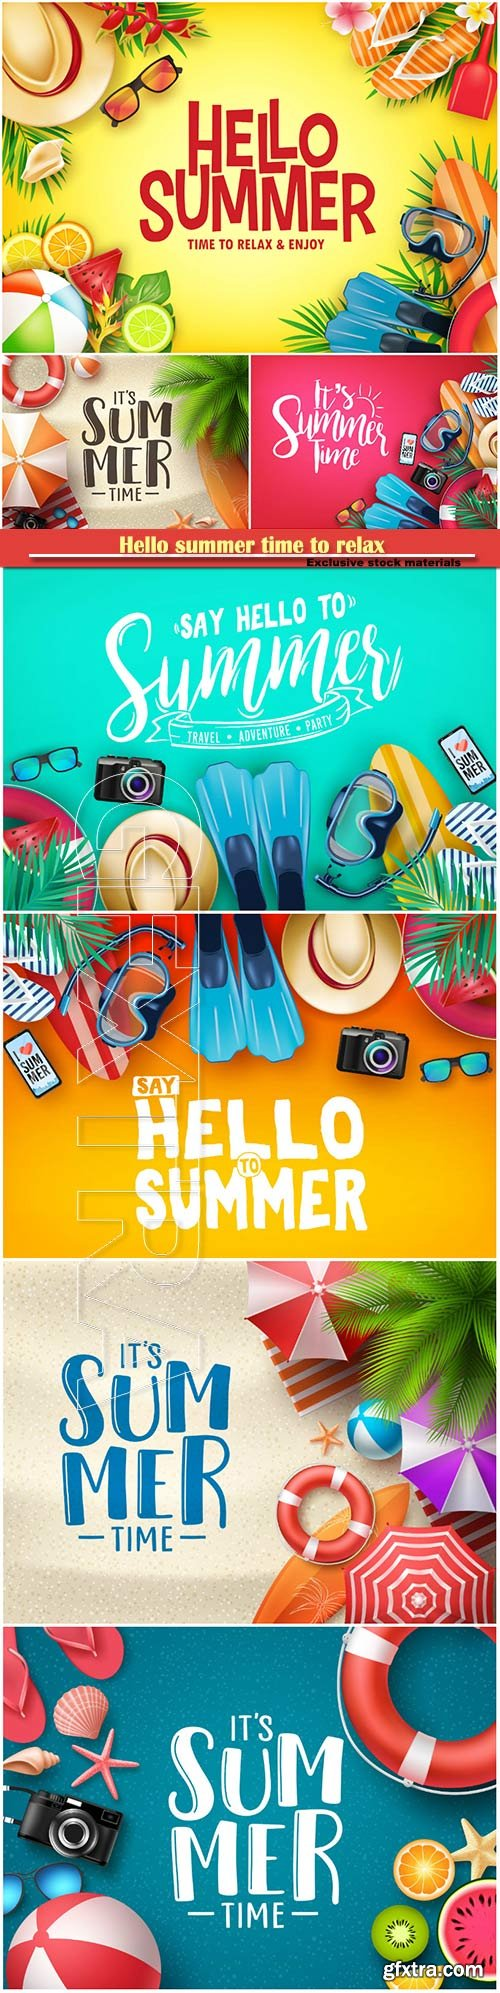 Hello summer time to relax and enjoy vector illustration # 2